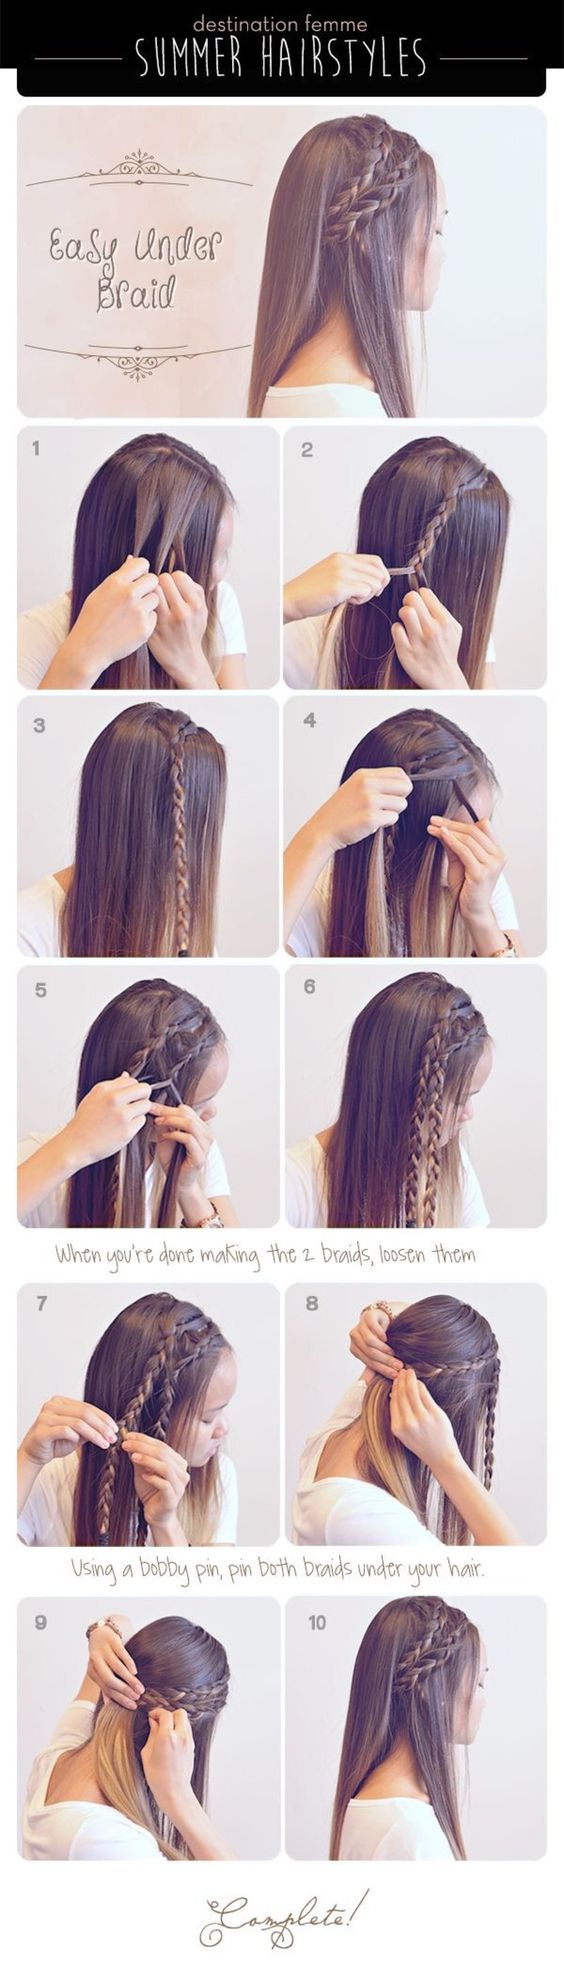 Step by Step Hair Tutorials for School